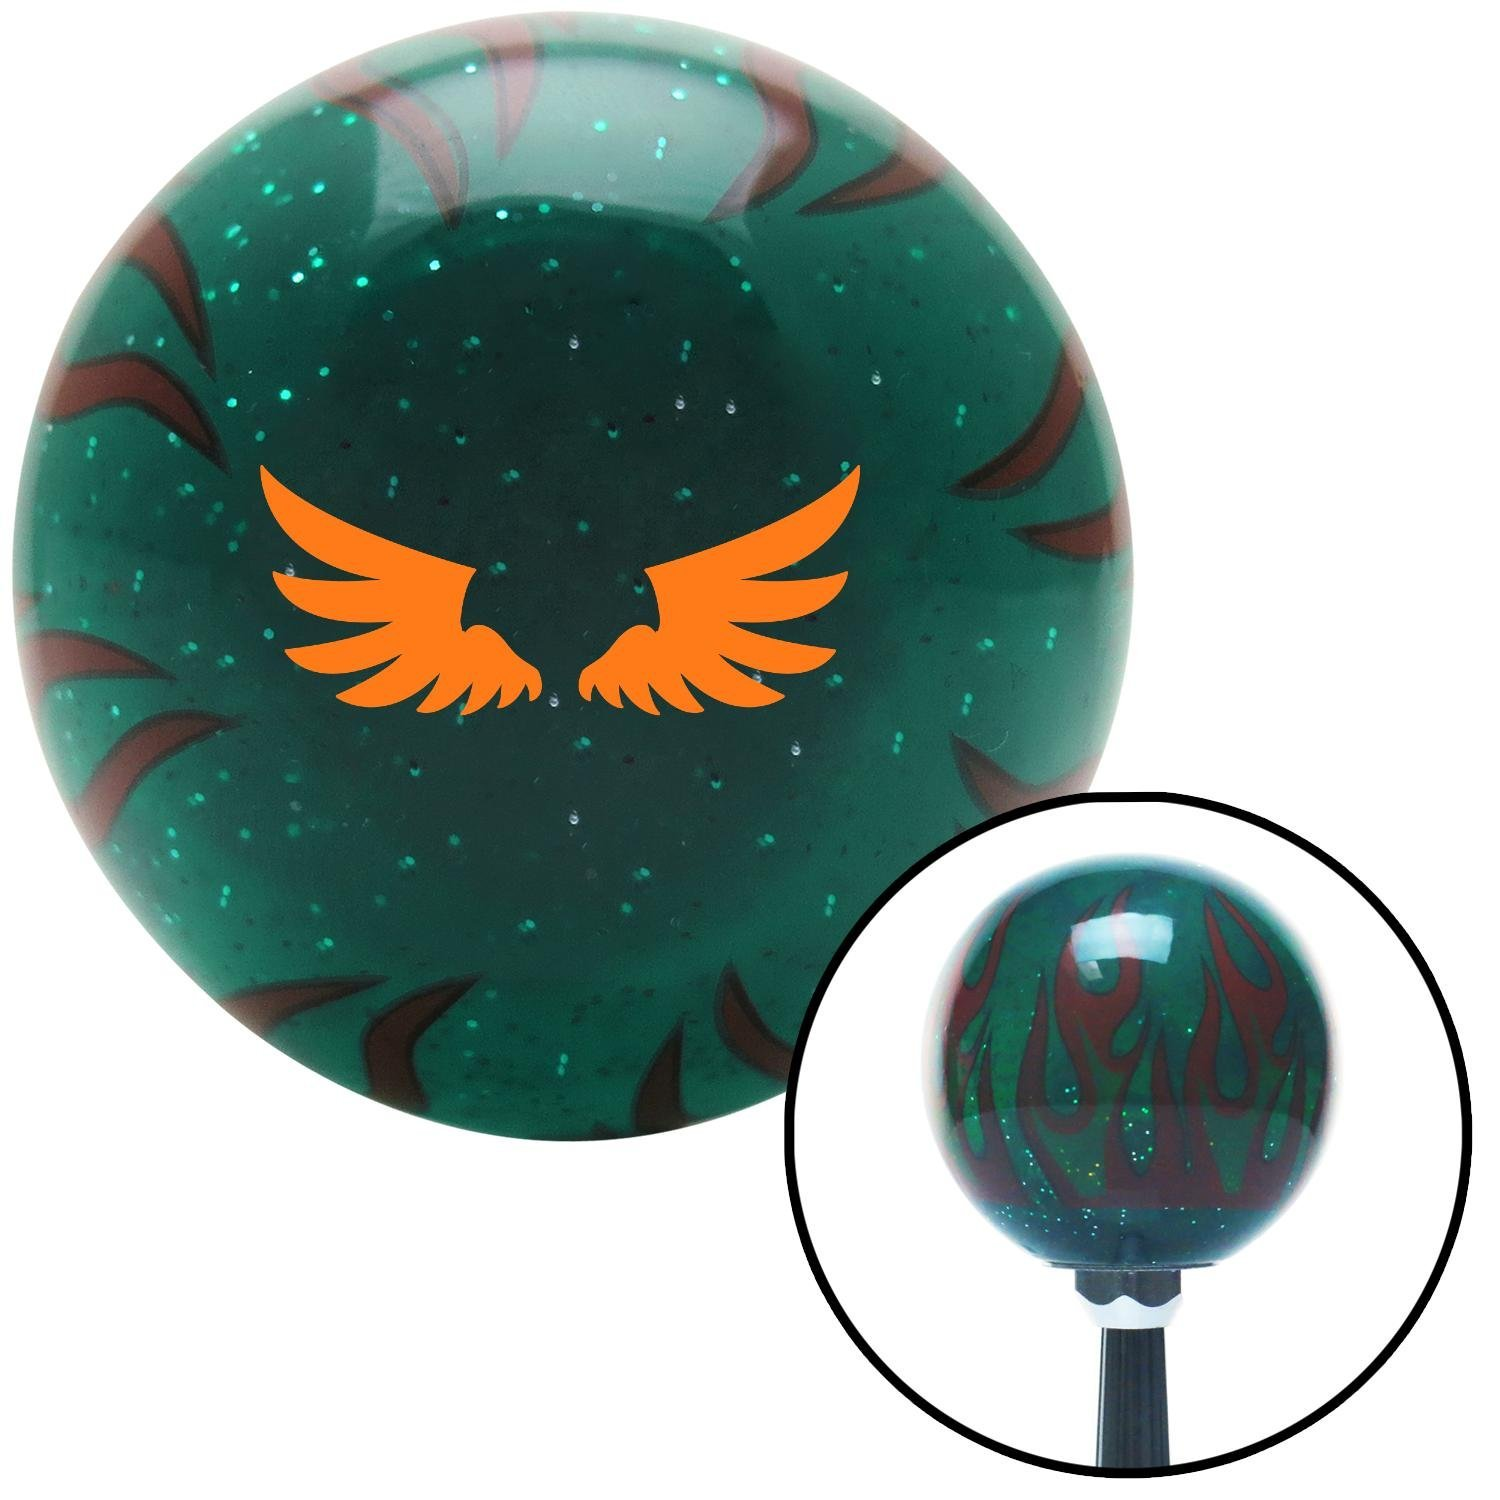 American Shifter 261796 Green Flame Metal Flake Shift Knob with M16x1,5 Insert (Orange Firebird Wingss) von American Shifter